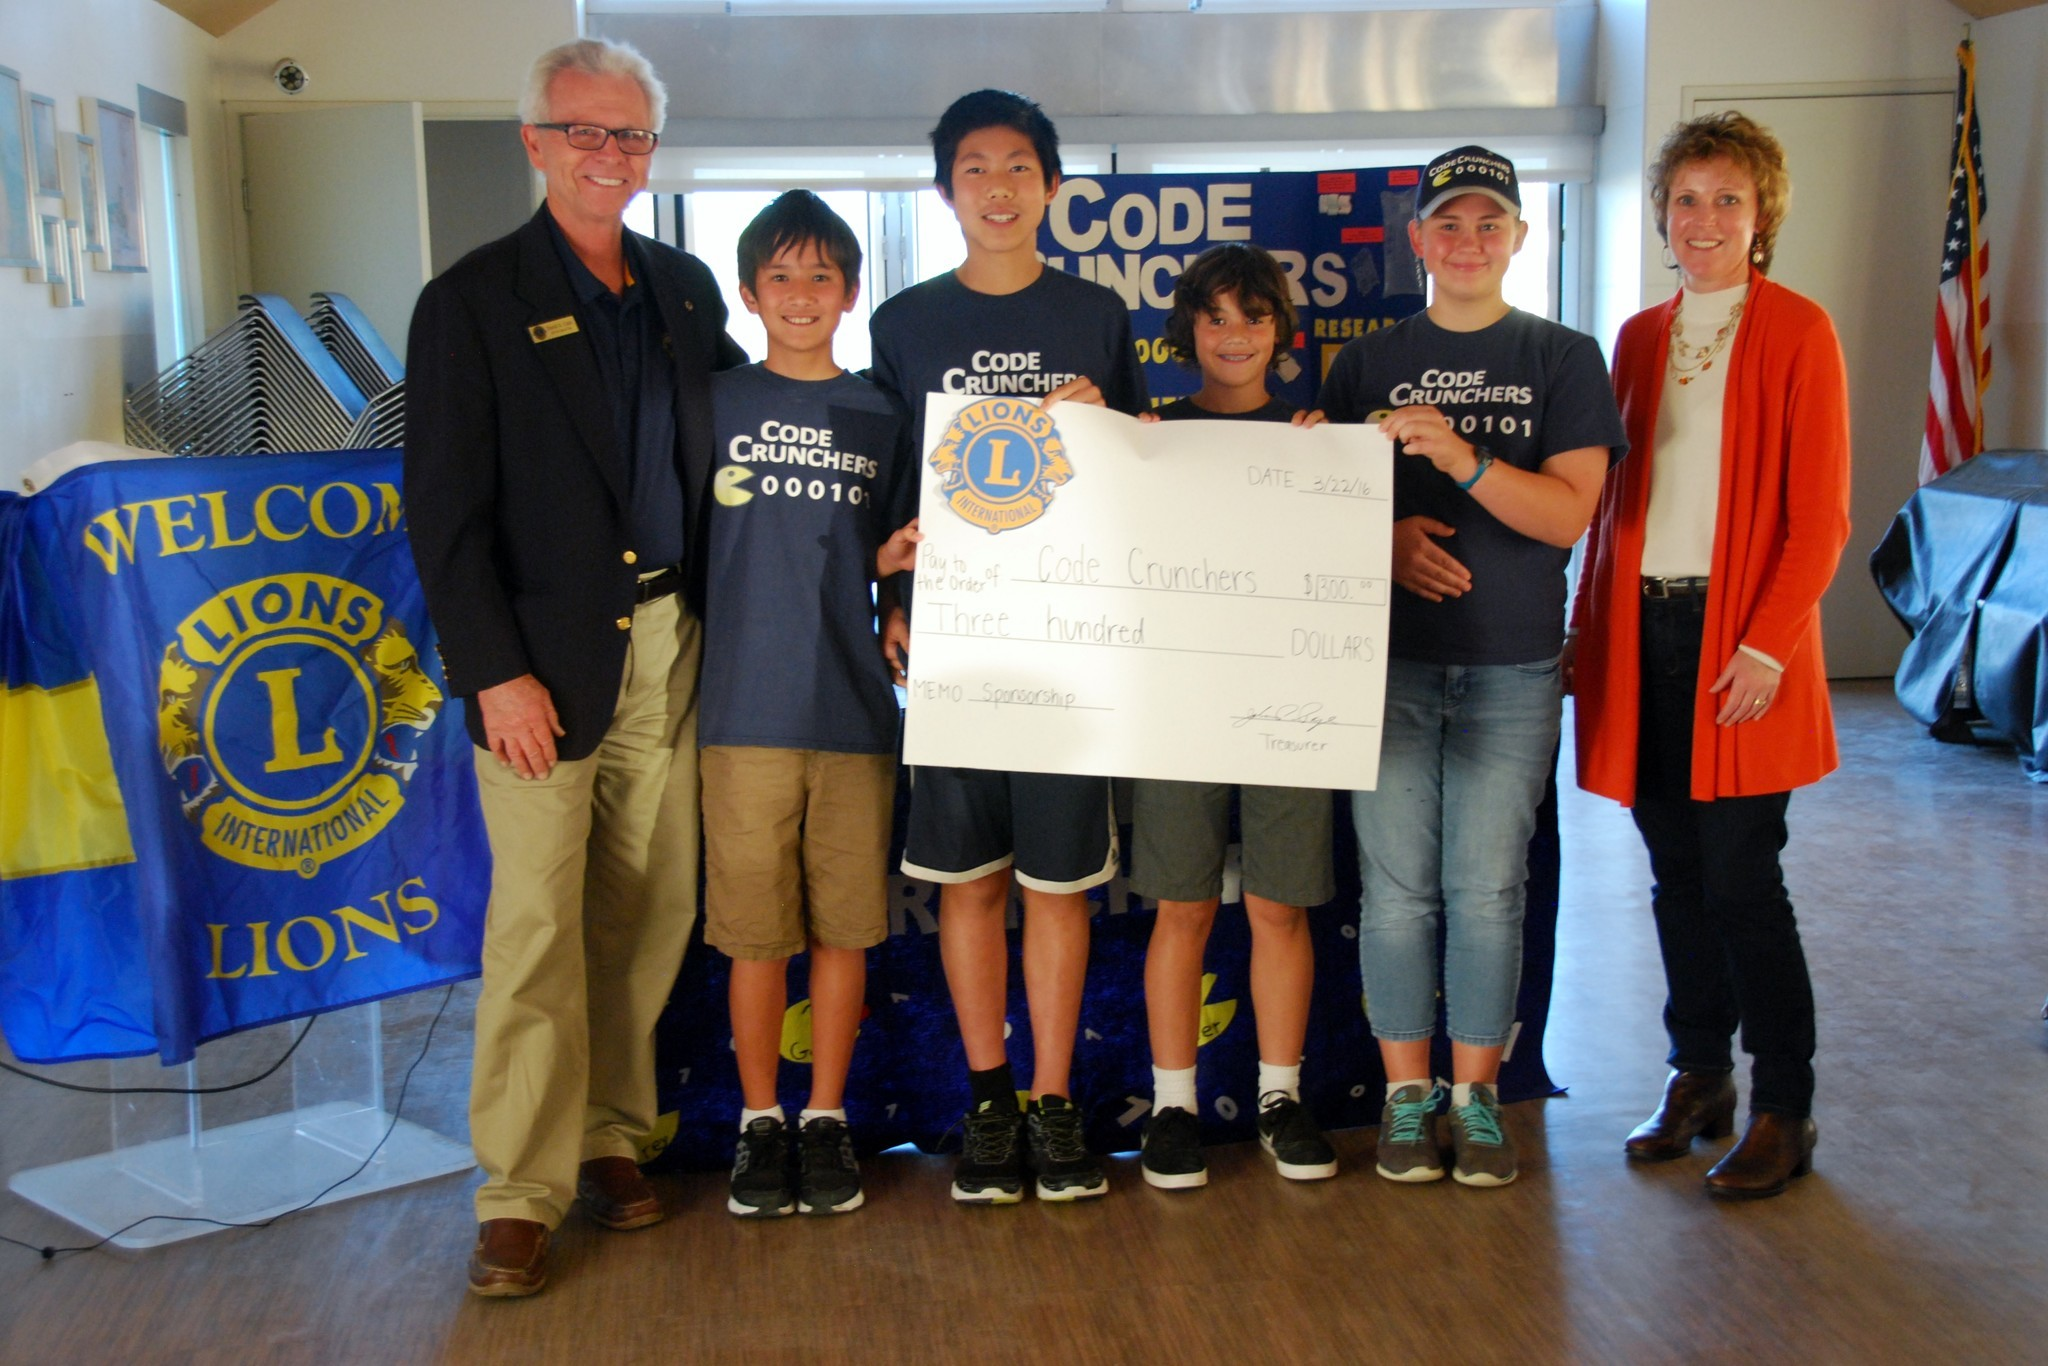 The Del Sol Lions Club helps support organizations such as The Code Breakers, a Solana Beach-based robotics team.